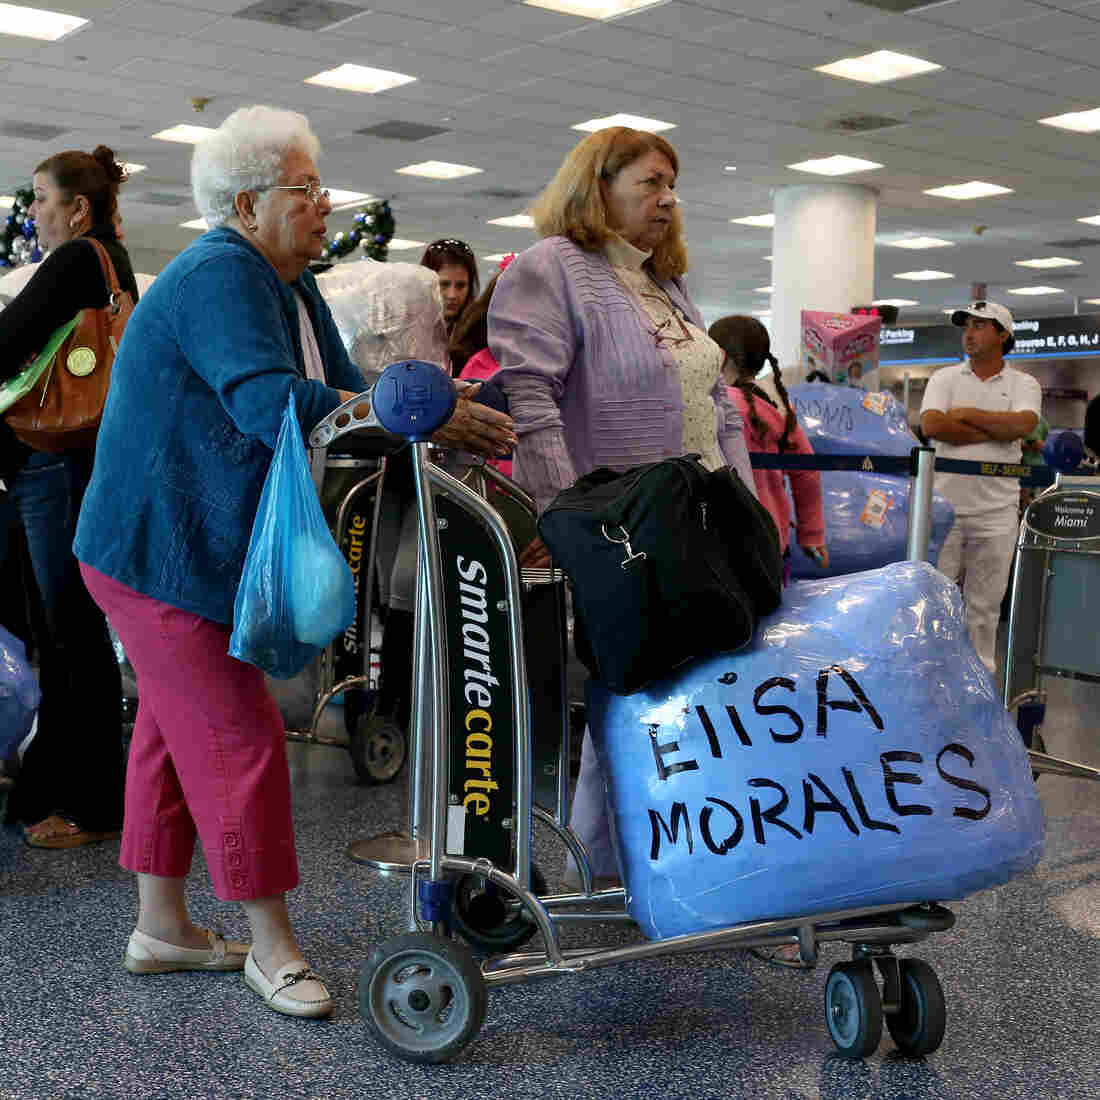 Traveling To Cuba Getting Easier, But Expect Turbulence On The Way